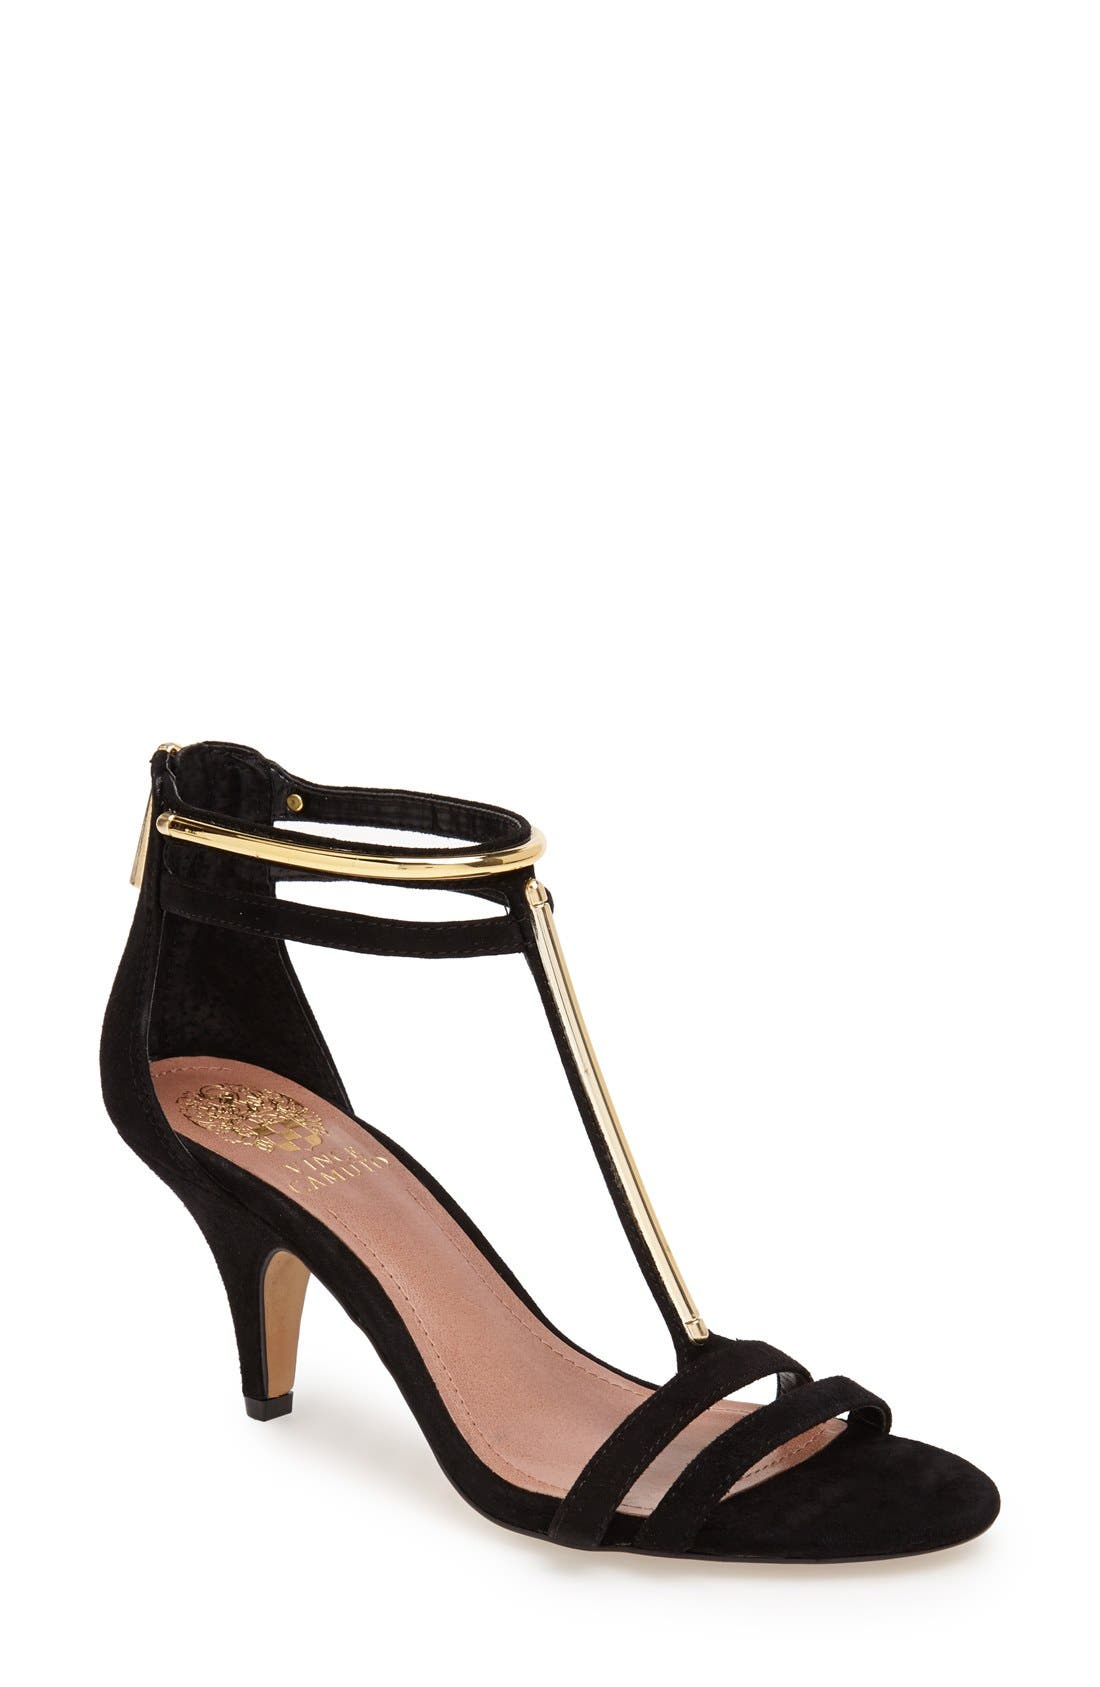 Alternate Image 1 Selected - Vince Camuto 'Mitzy' Suede T-Strap Sandal (Women)